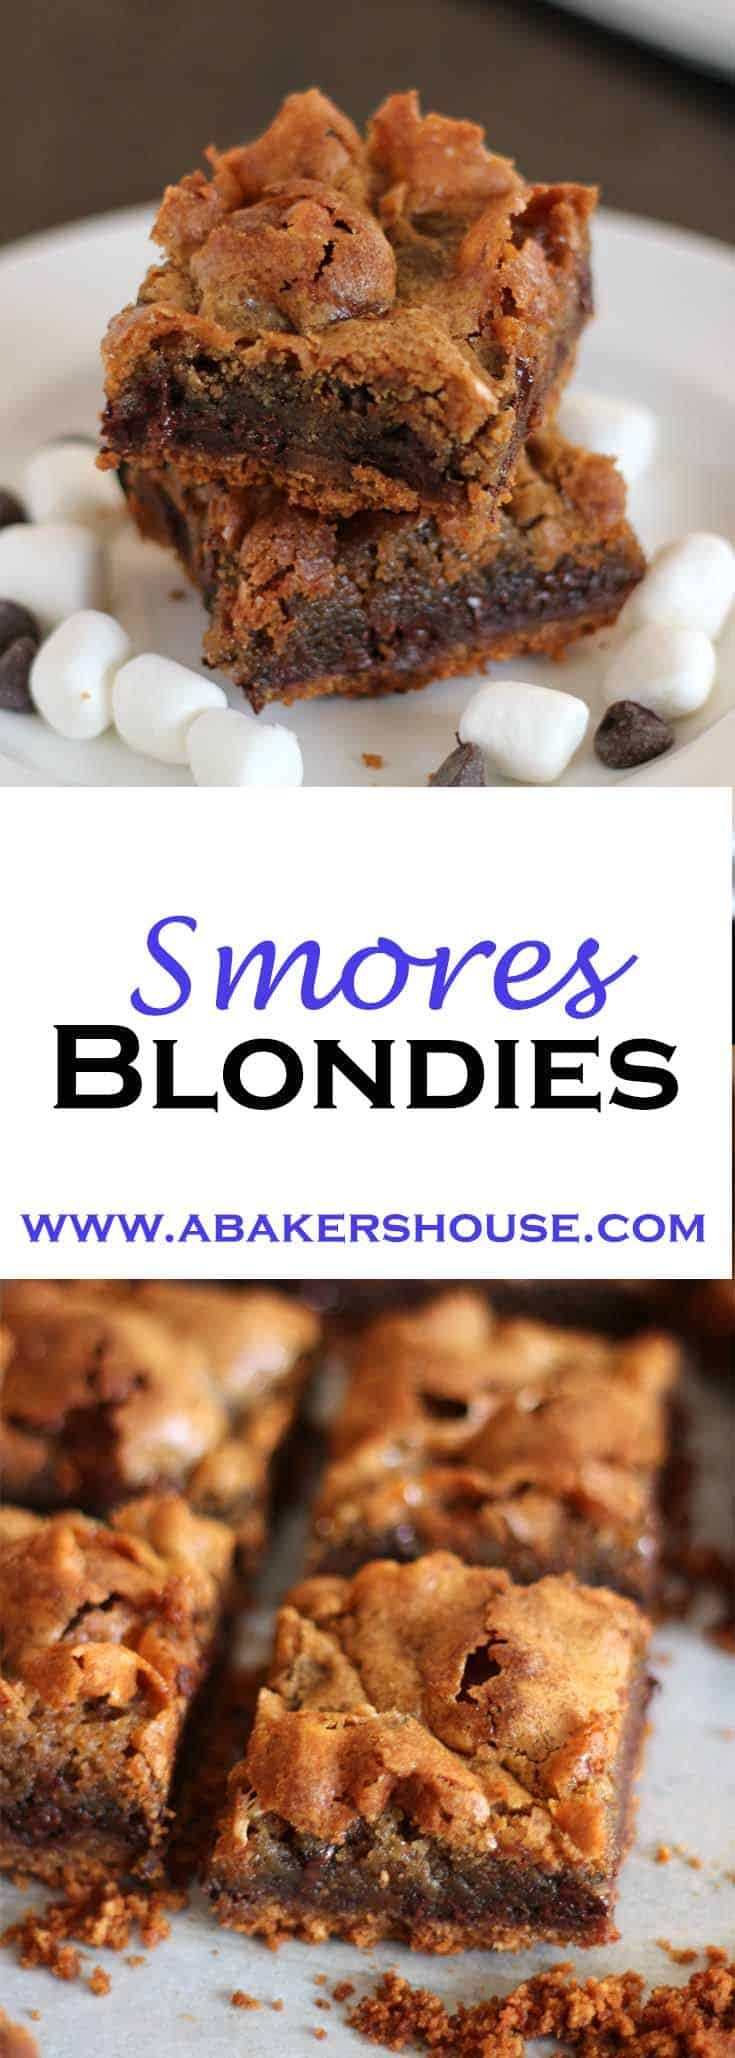 These s'mores blondies start with a graham cracker base then are topped with a blondie batter filled with marshmallows and chocolate chips. The result is a chewy bite that will remind you of sitting around the campfire enjoying s'mores. #abakershouse #smores #dessertbars